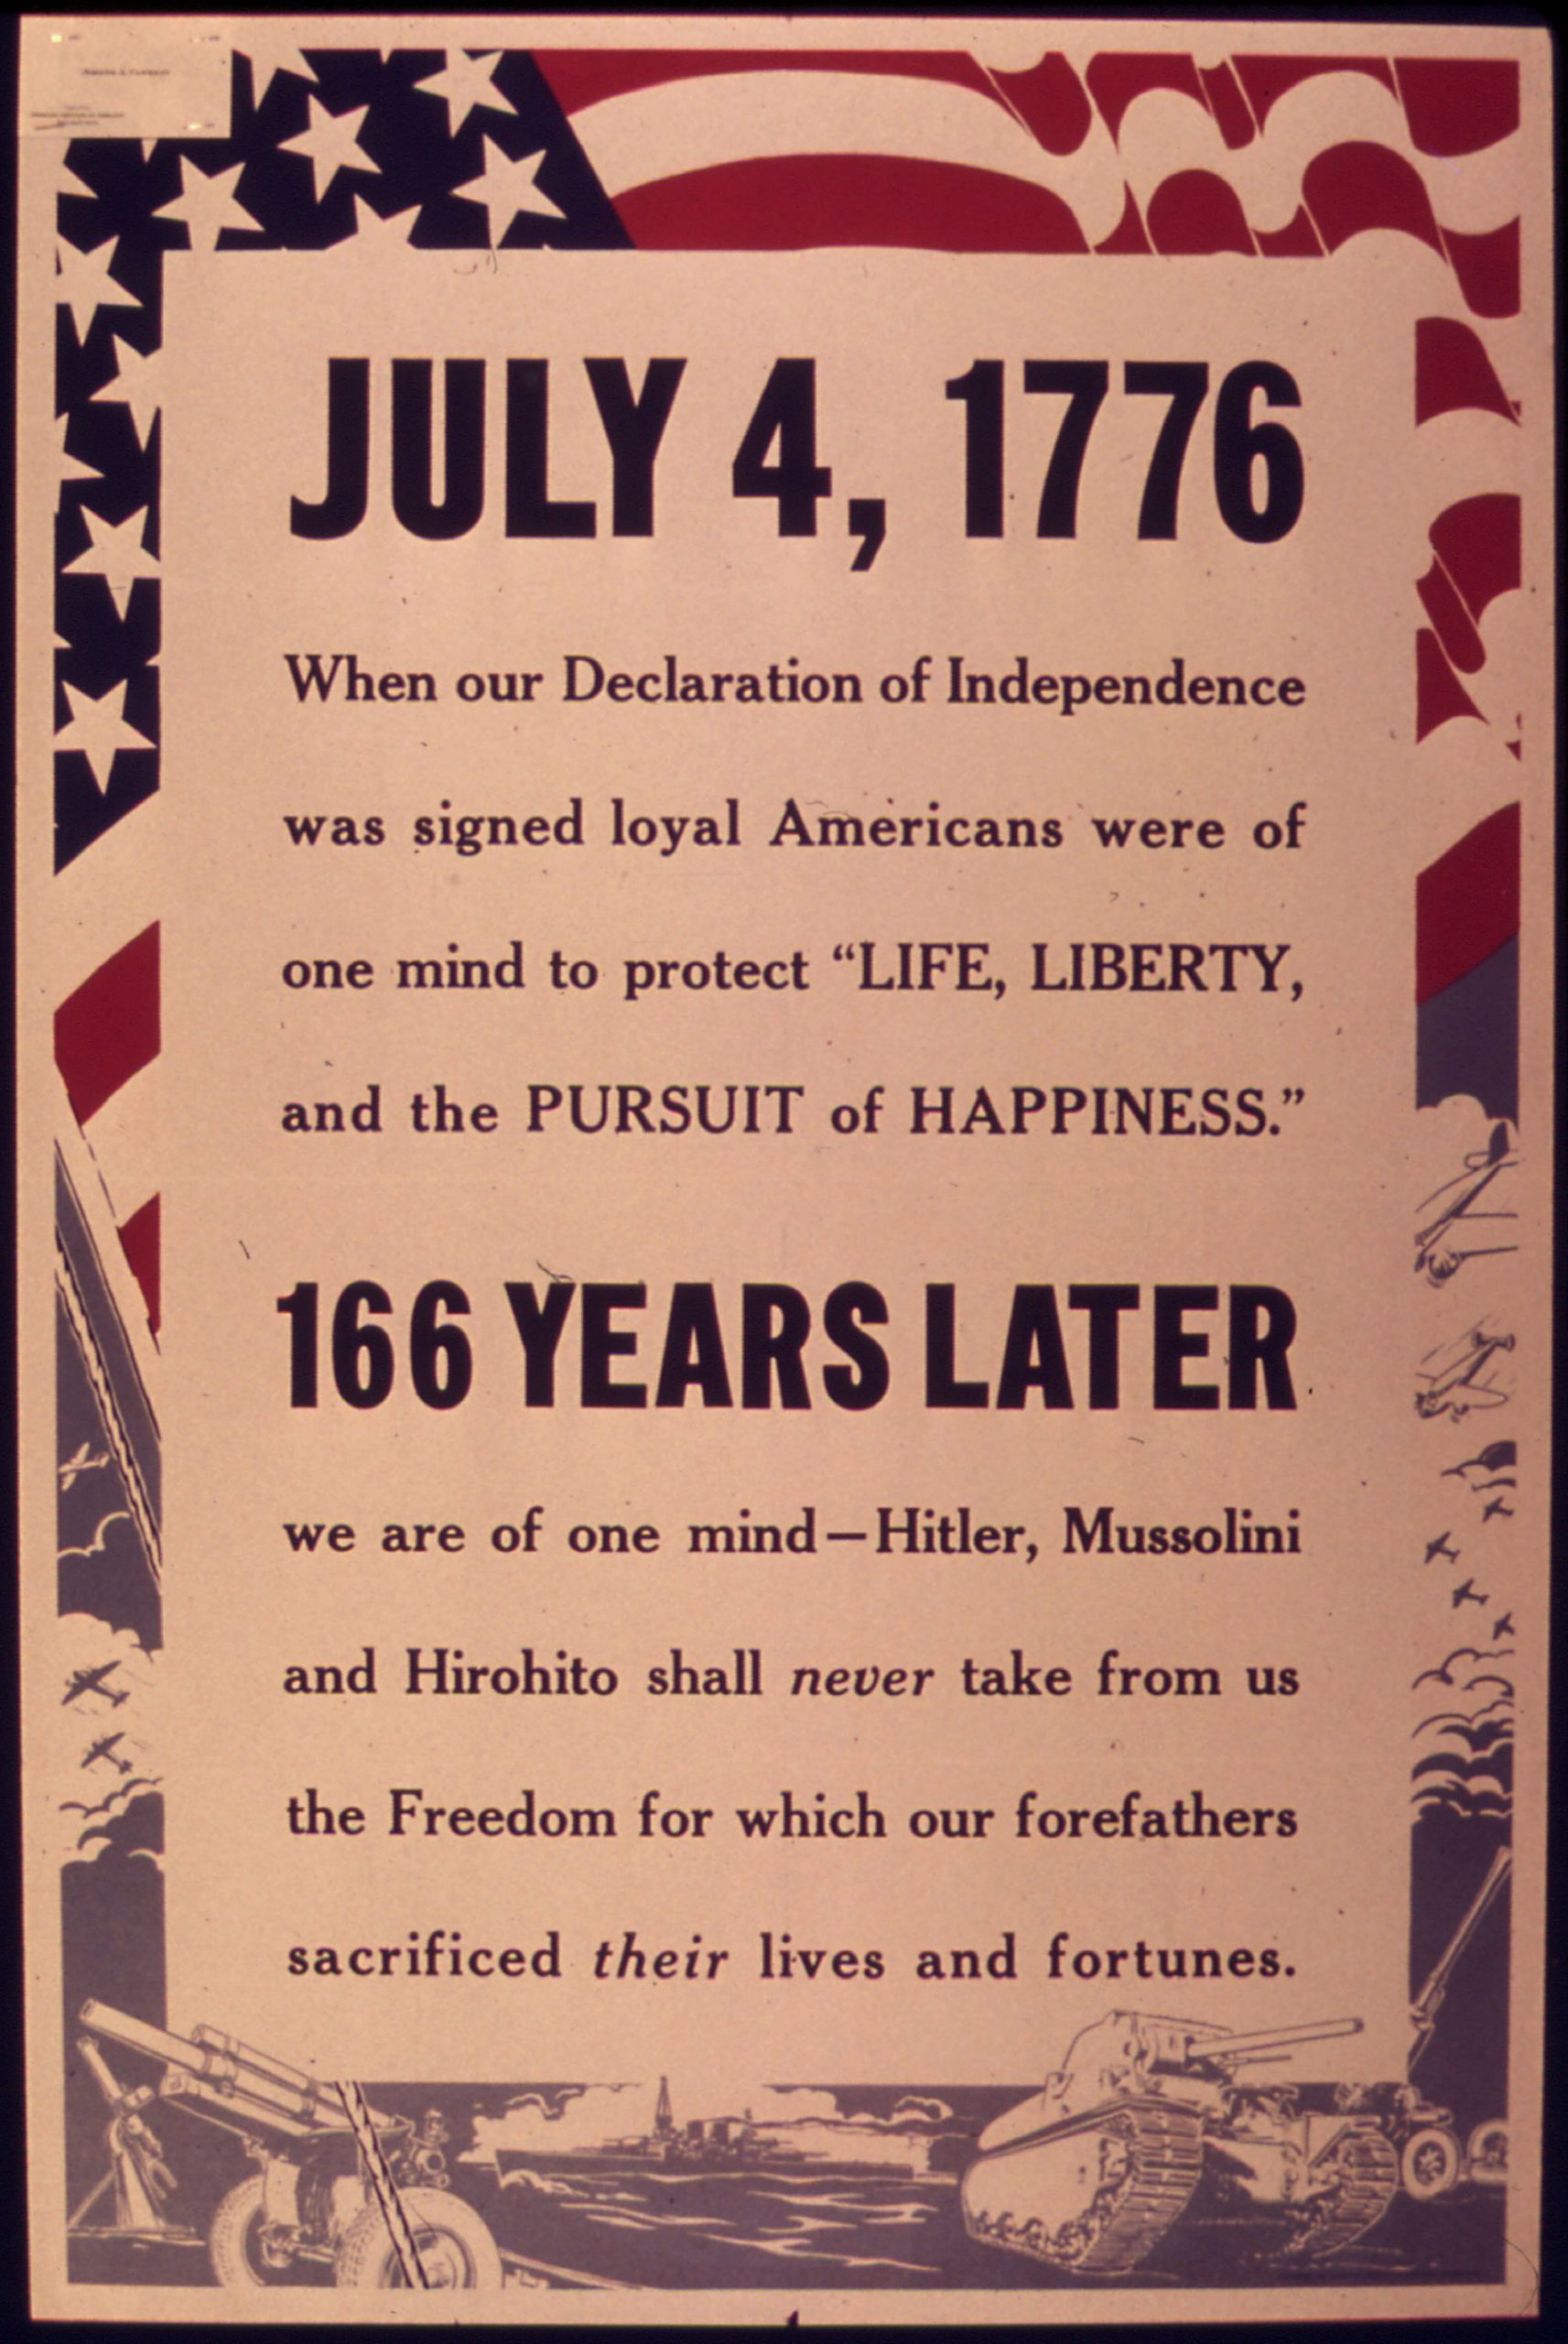 July 4th 1776 pamphlet about freedom